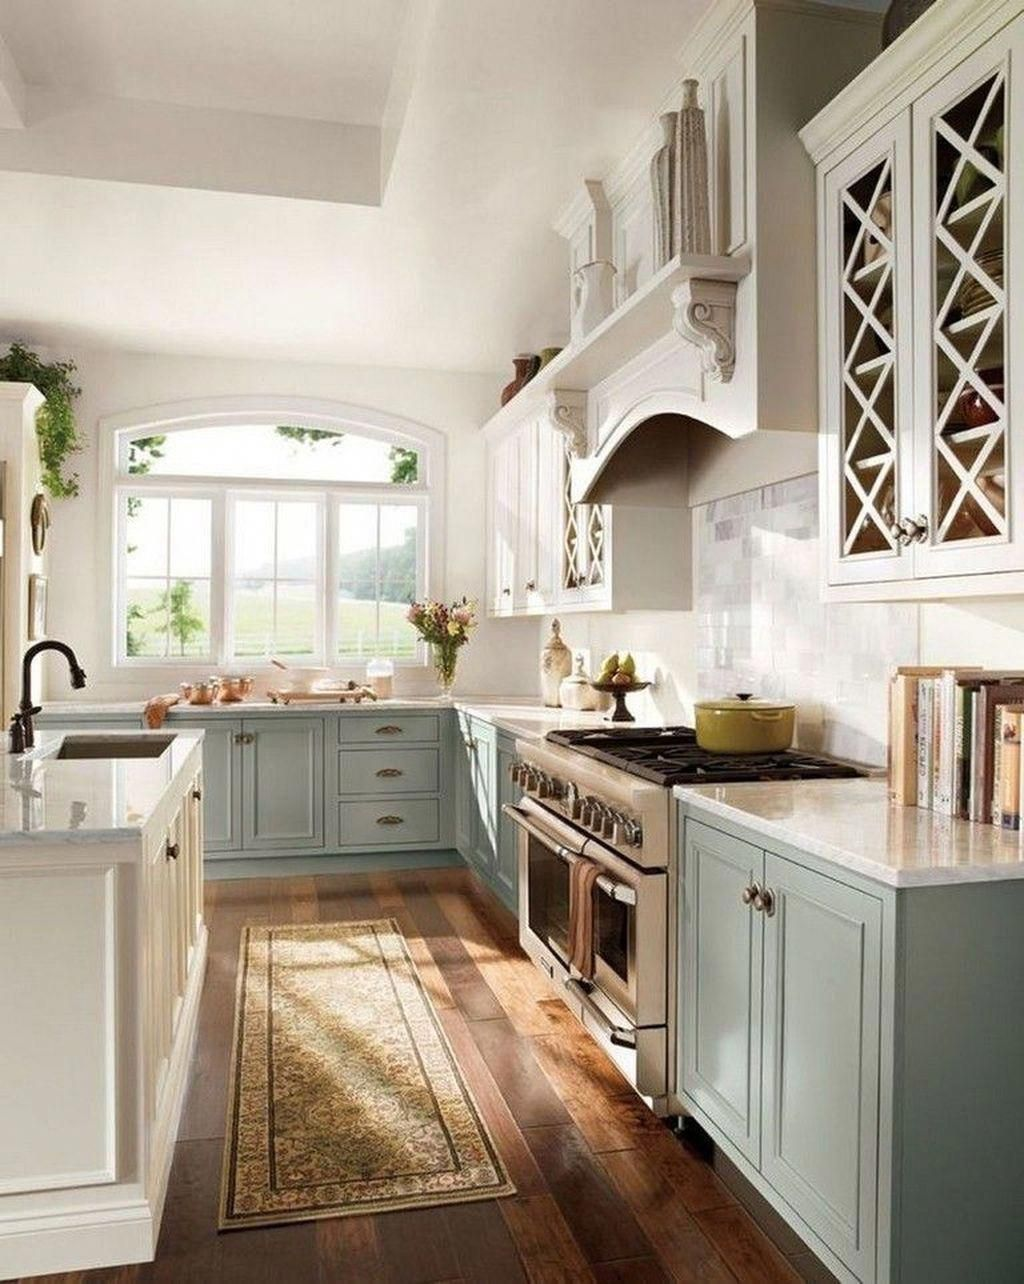 the difference between modern interiors and traditional interior home design in 2020 with on kitchen remodel french country id=65611